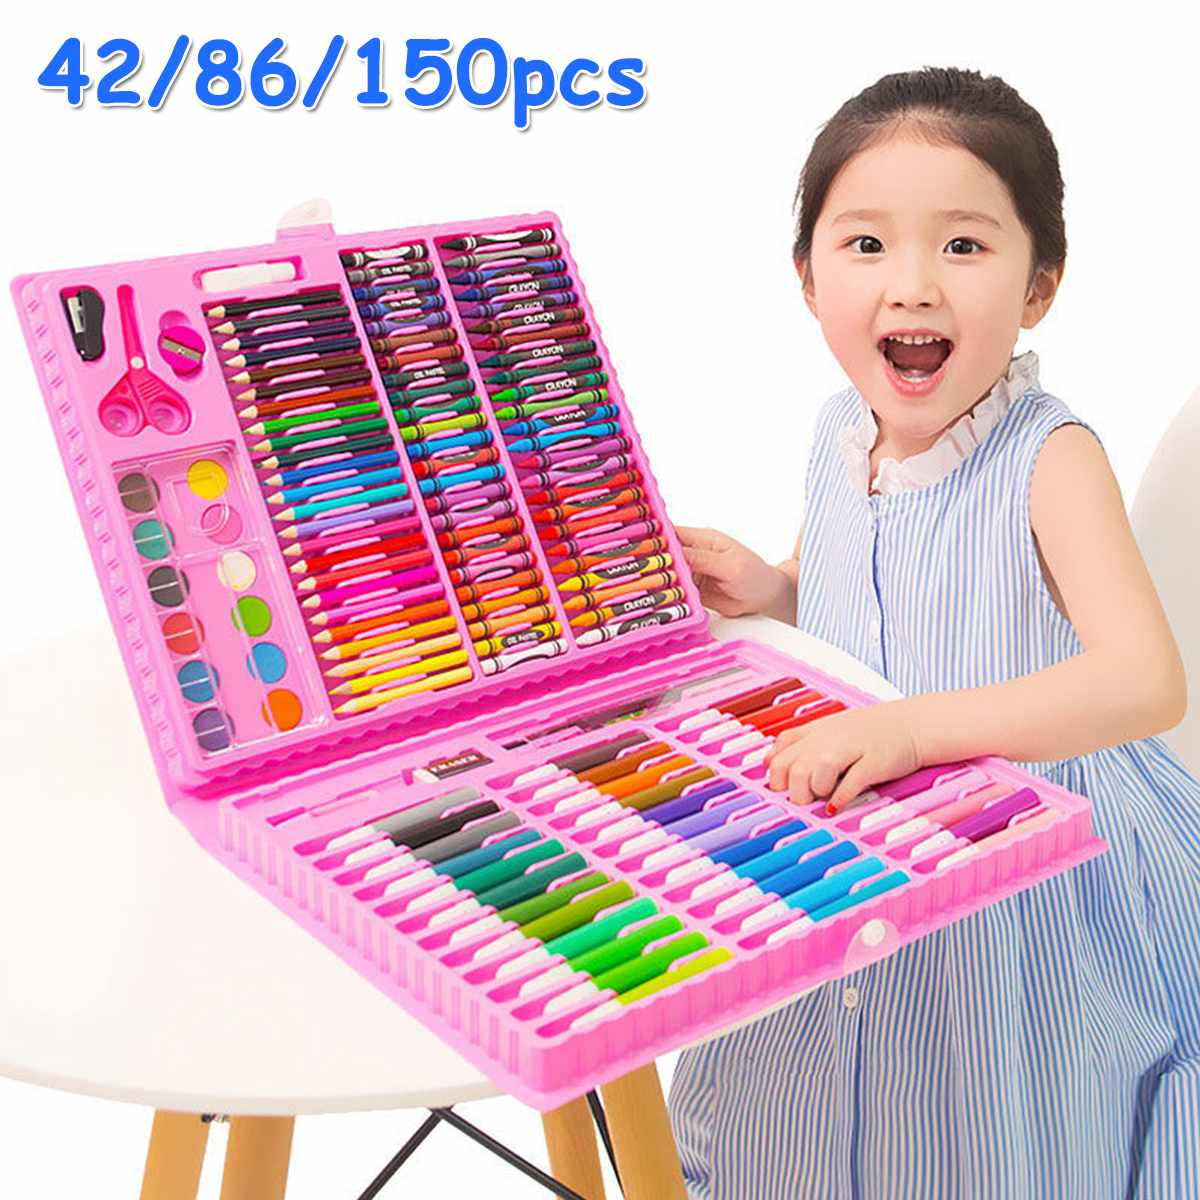 150PCS Colored Pencil Artist Kit Painting Crayon Marker Pen Brush Drawing Tools Set Kindergarten Drawing Supplies kids Gufts(China)